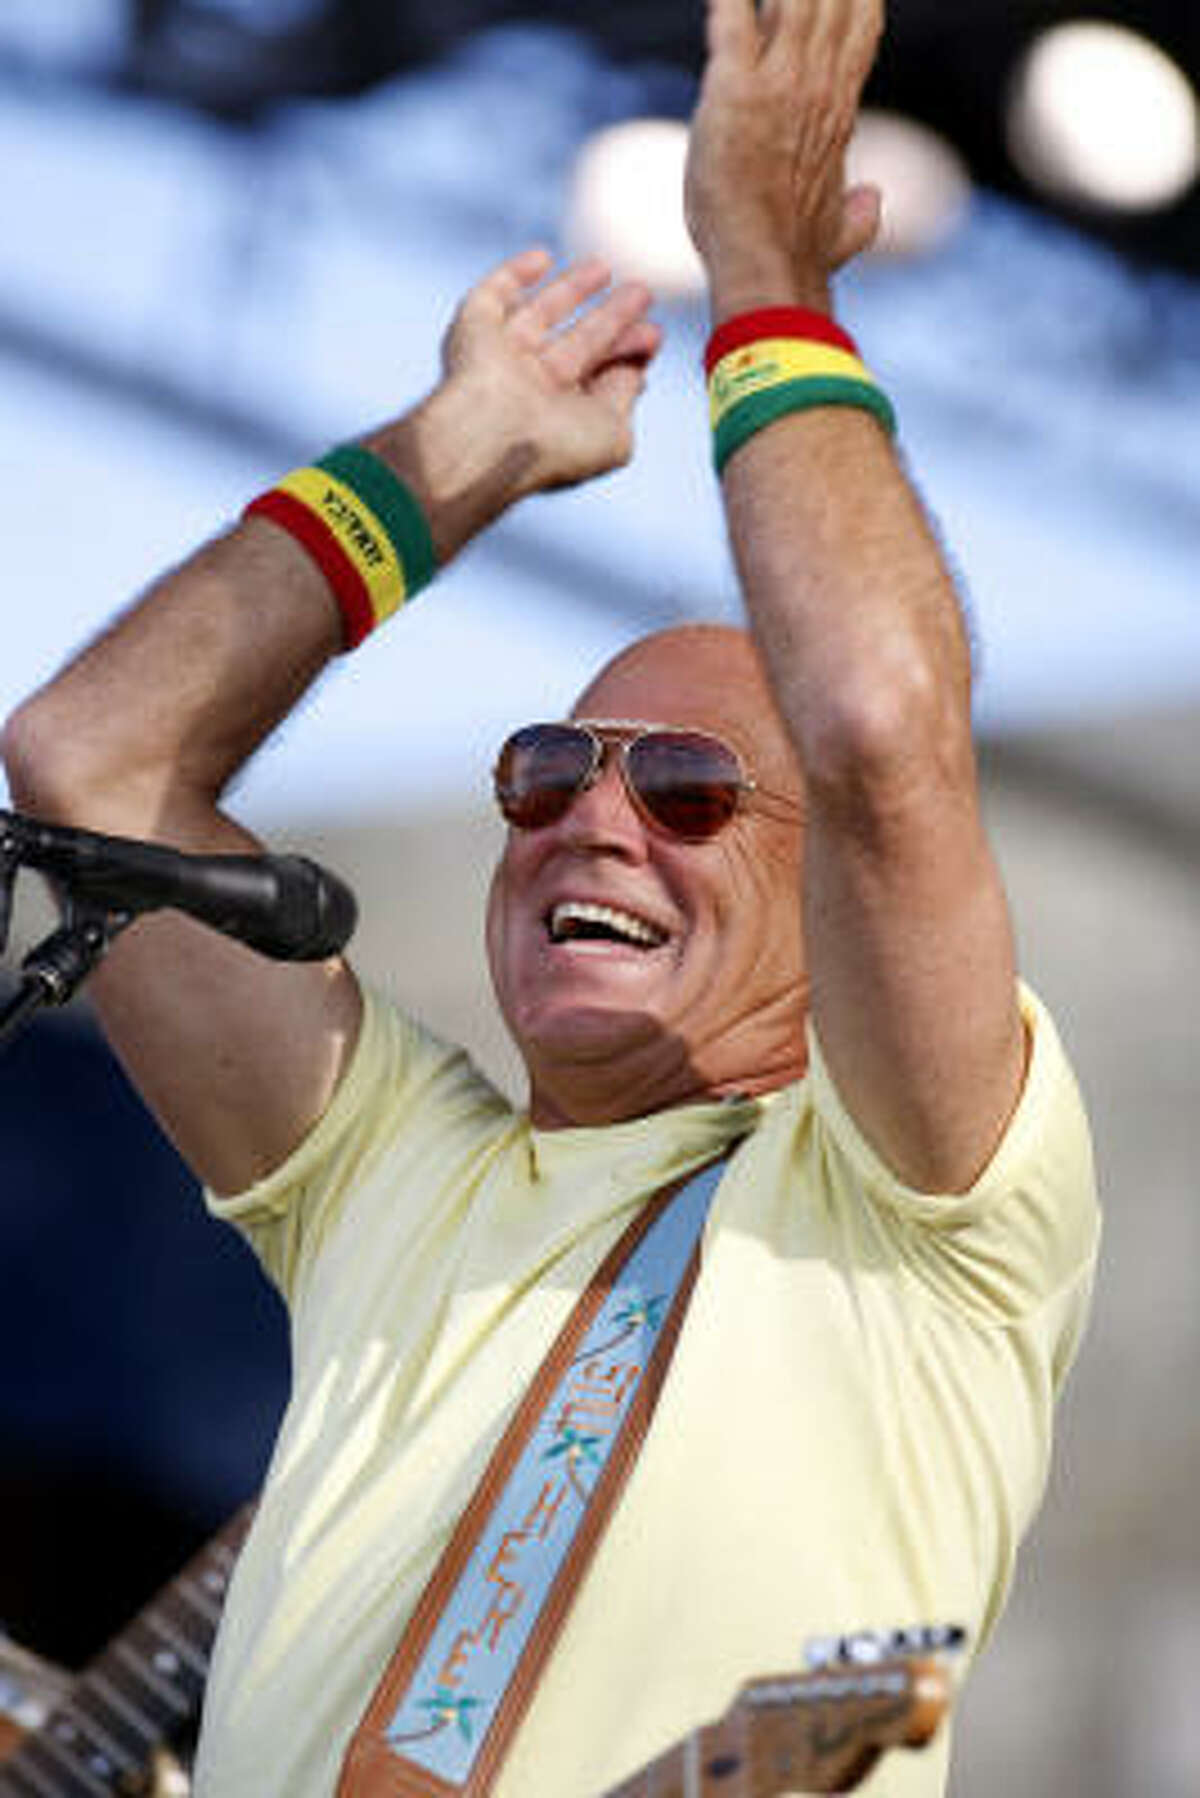 For the first time, the Cynthia Woods Mitchell Pavilion will allow tailgating prior to a concert. Jimmy Buffett fans will have the chance to party before his Thursday night show.